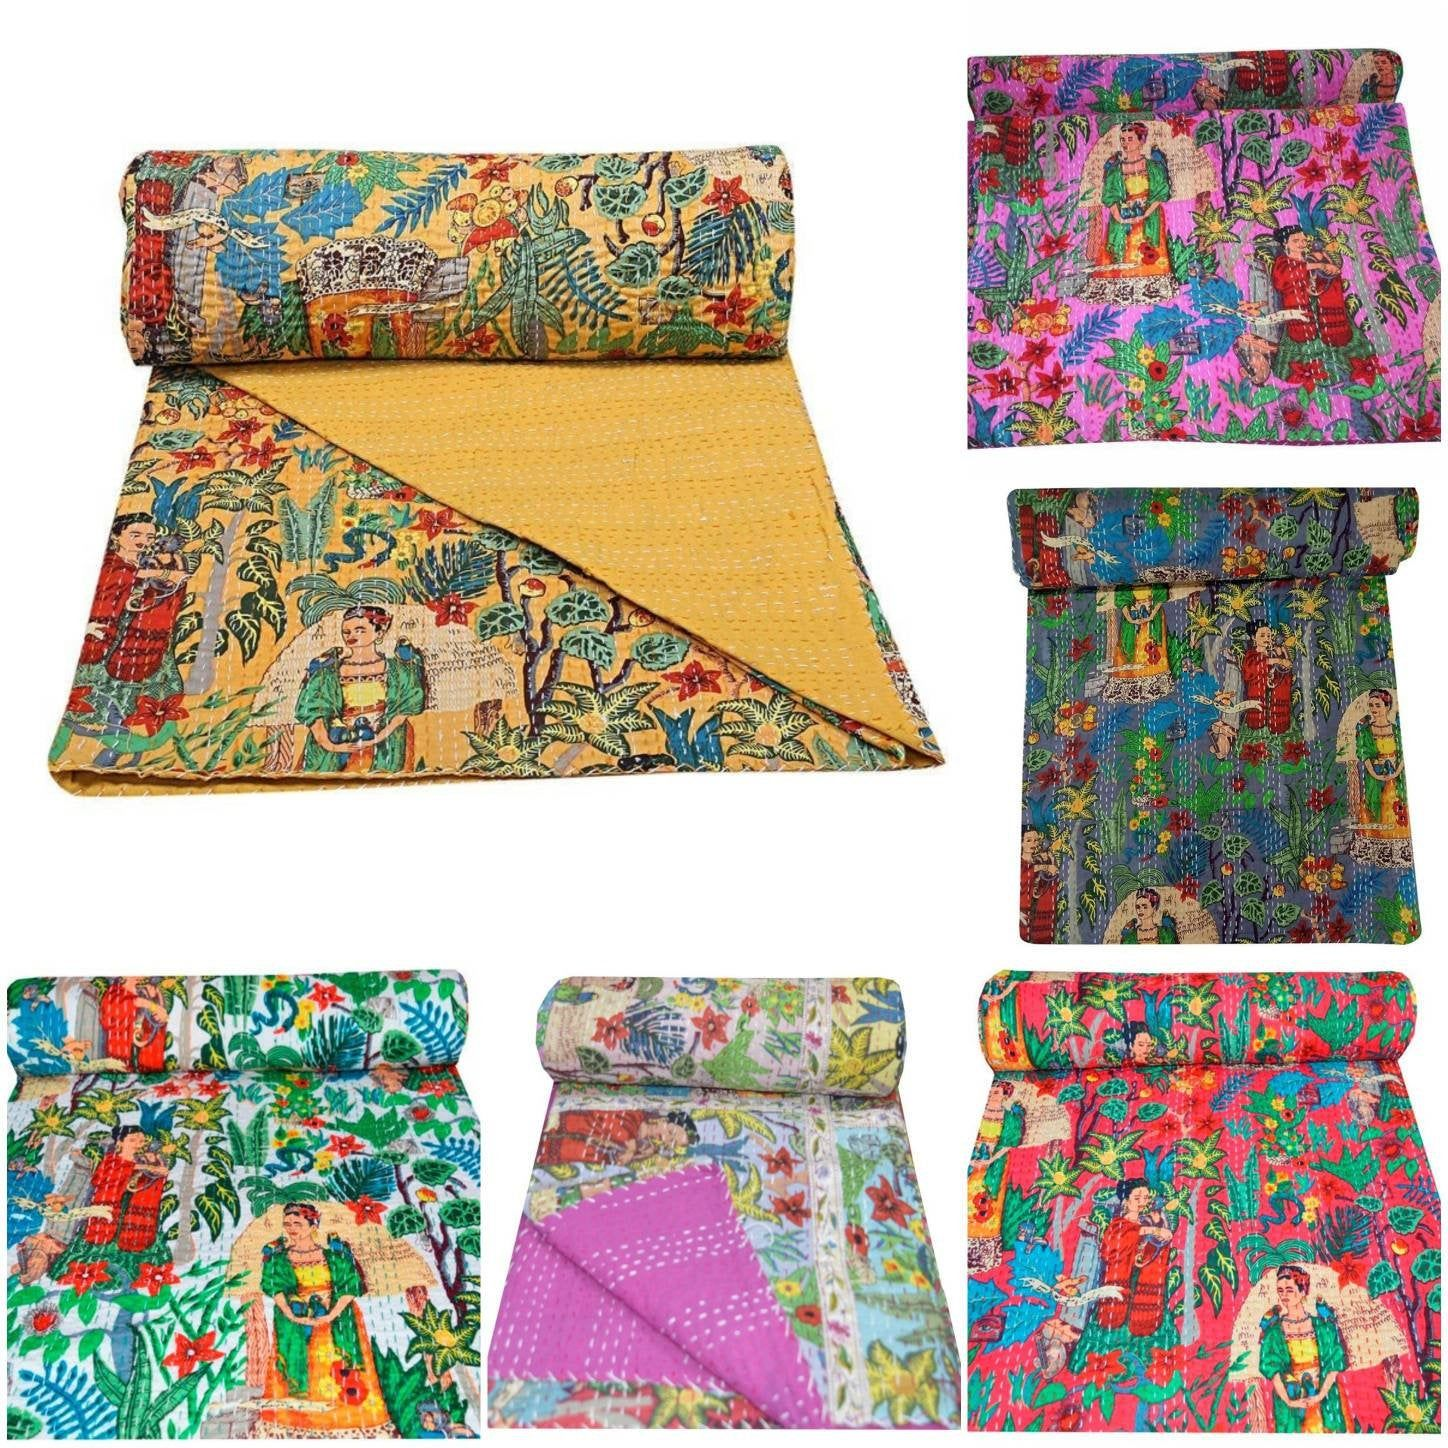 Queen Size Quilt 90 x108 Inches Gudri Kantha Bed Cover The Art Gallery Turquoise Floral Print Hand Block Printed Cotton Kantha Quilt Indian Cotton Blanket Bohemian Bedspread